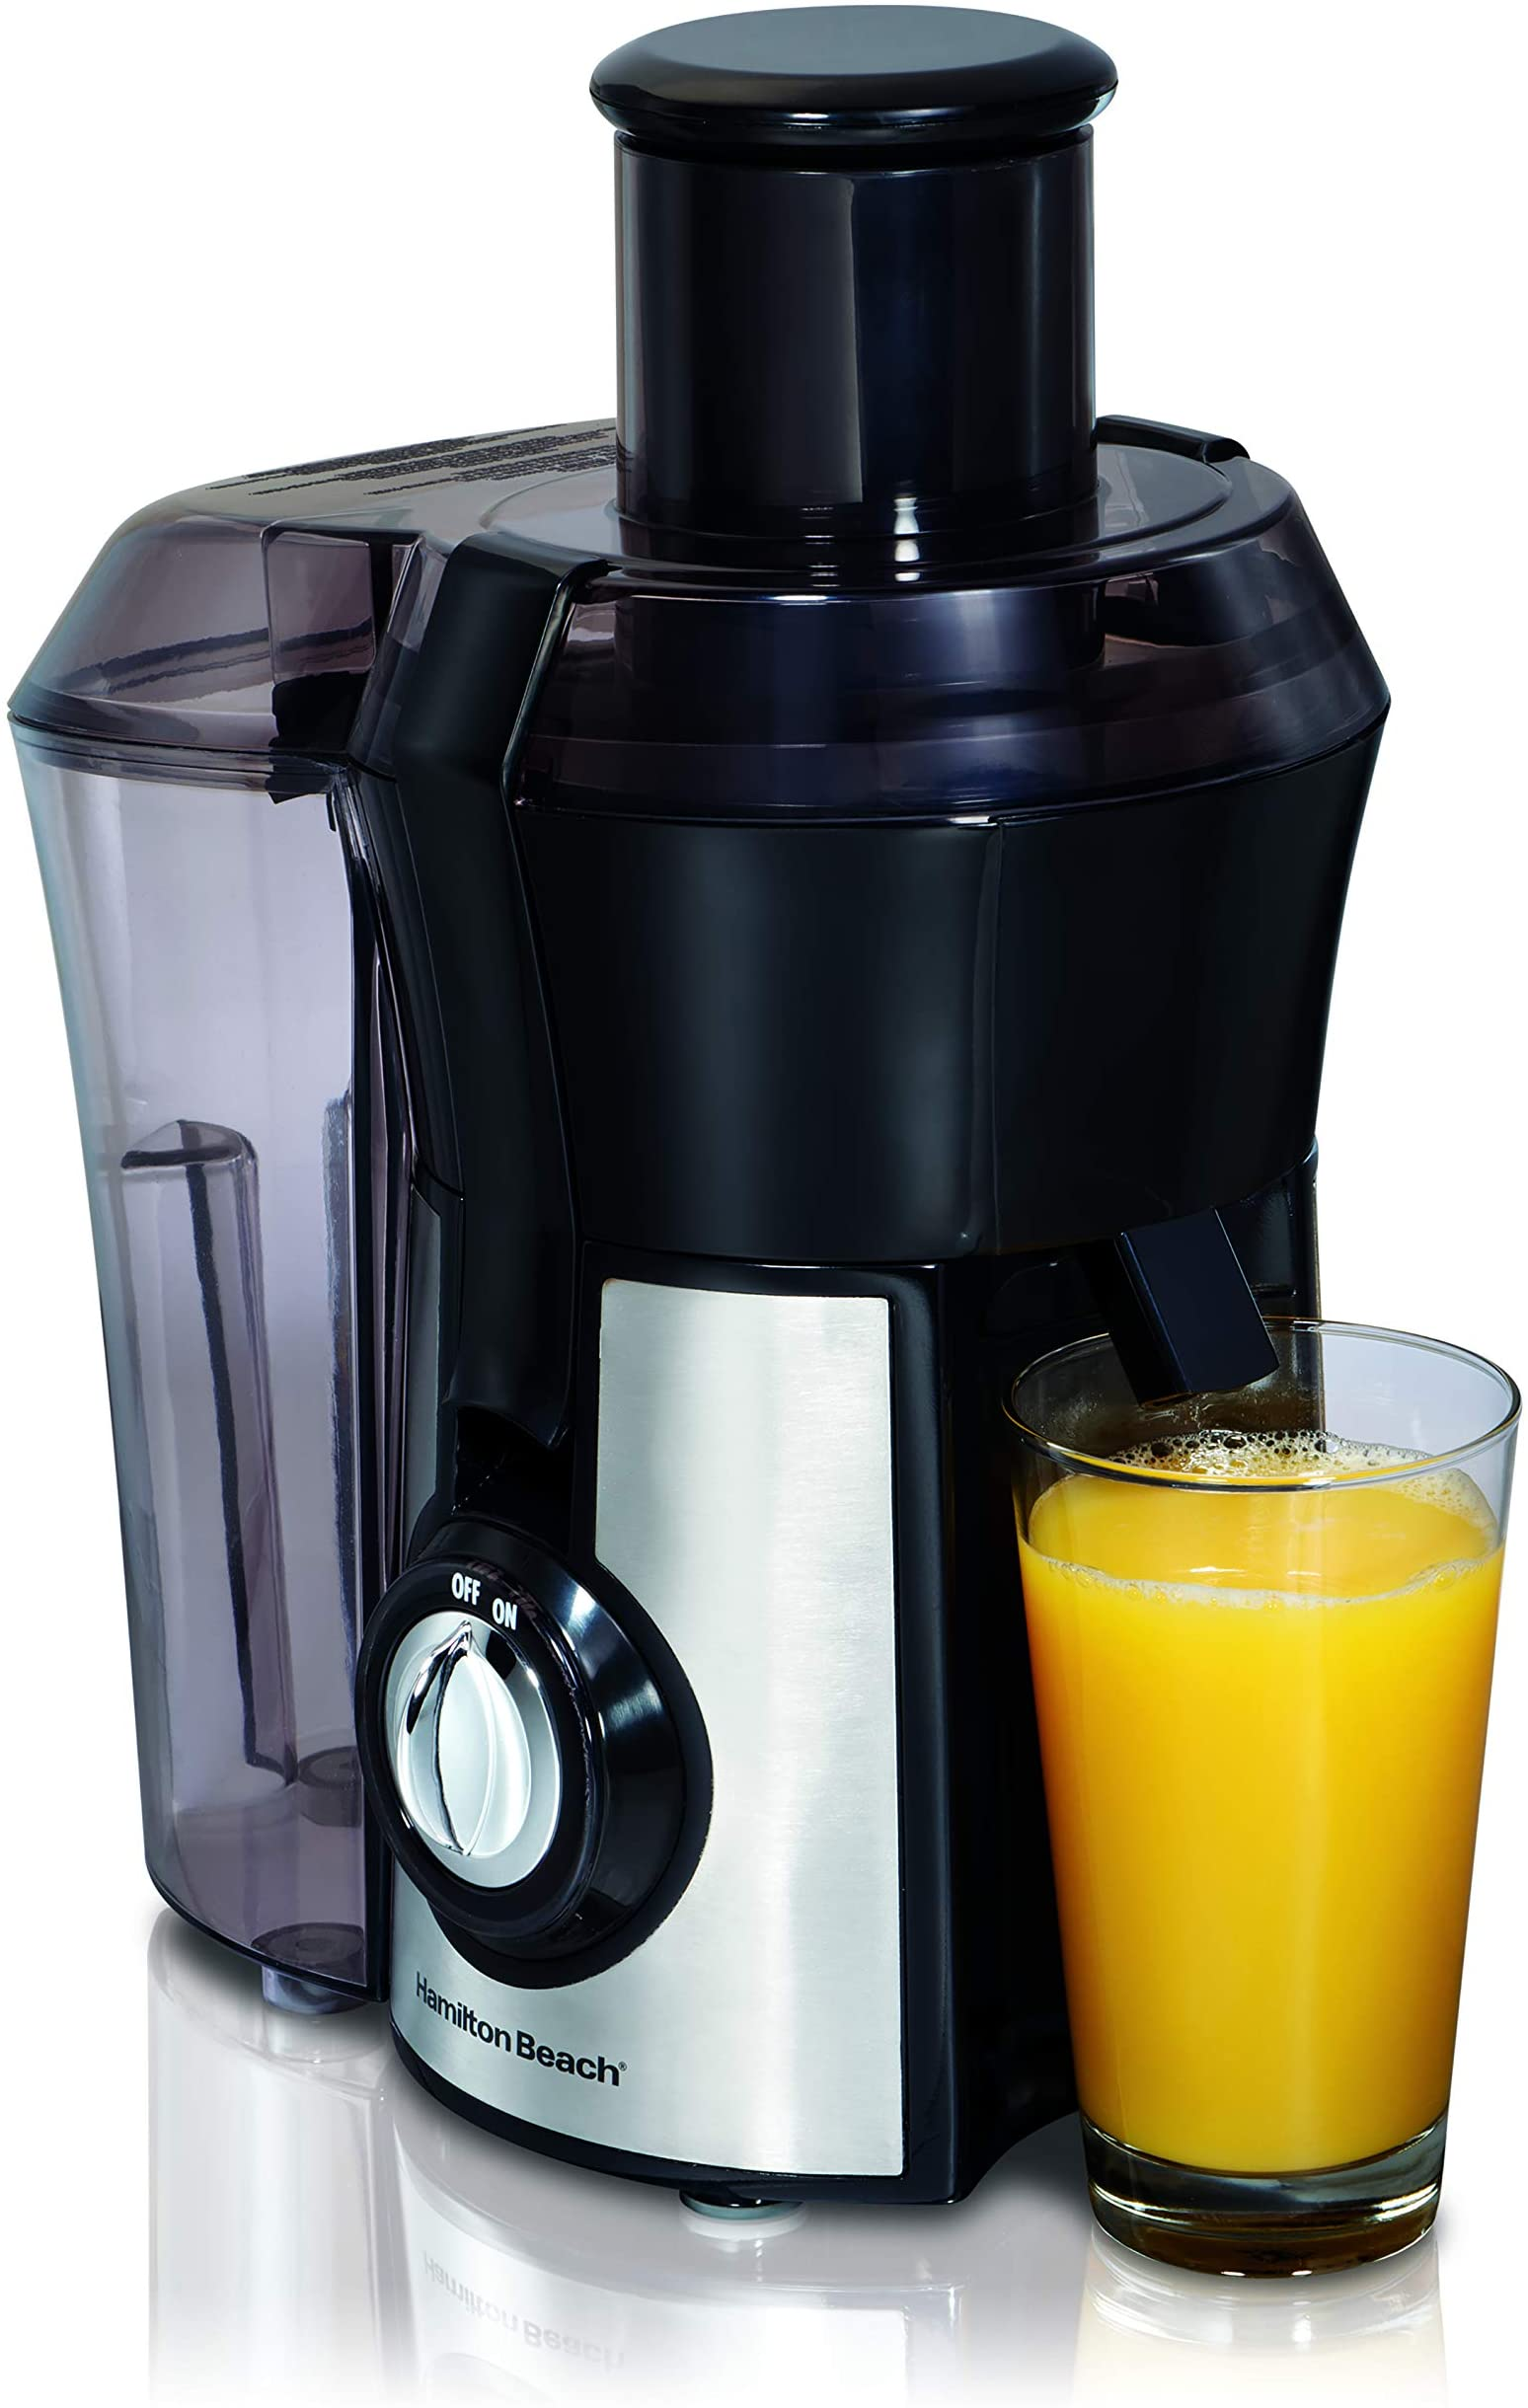 "Hamilton Beach Pro Juicer Machine, Big Mouth Large 3"" Feedchute, Easy to Clean, Centrifugal, BPA Free, 800W (67608A), Silver"